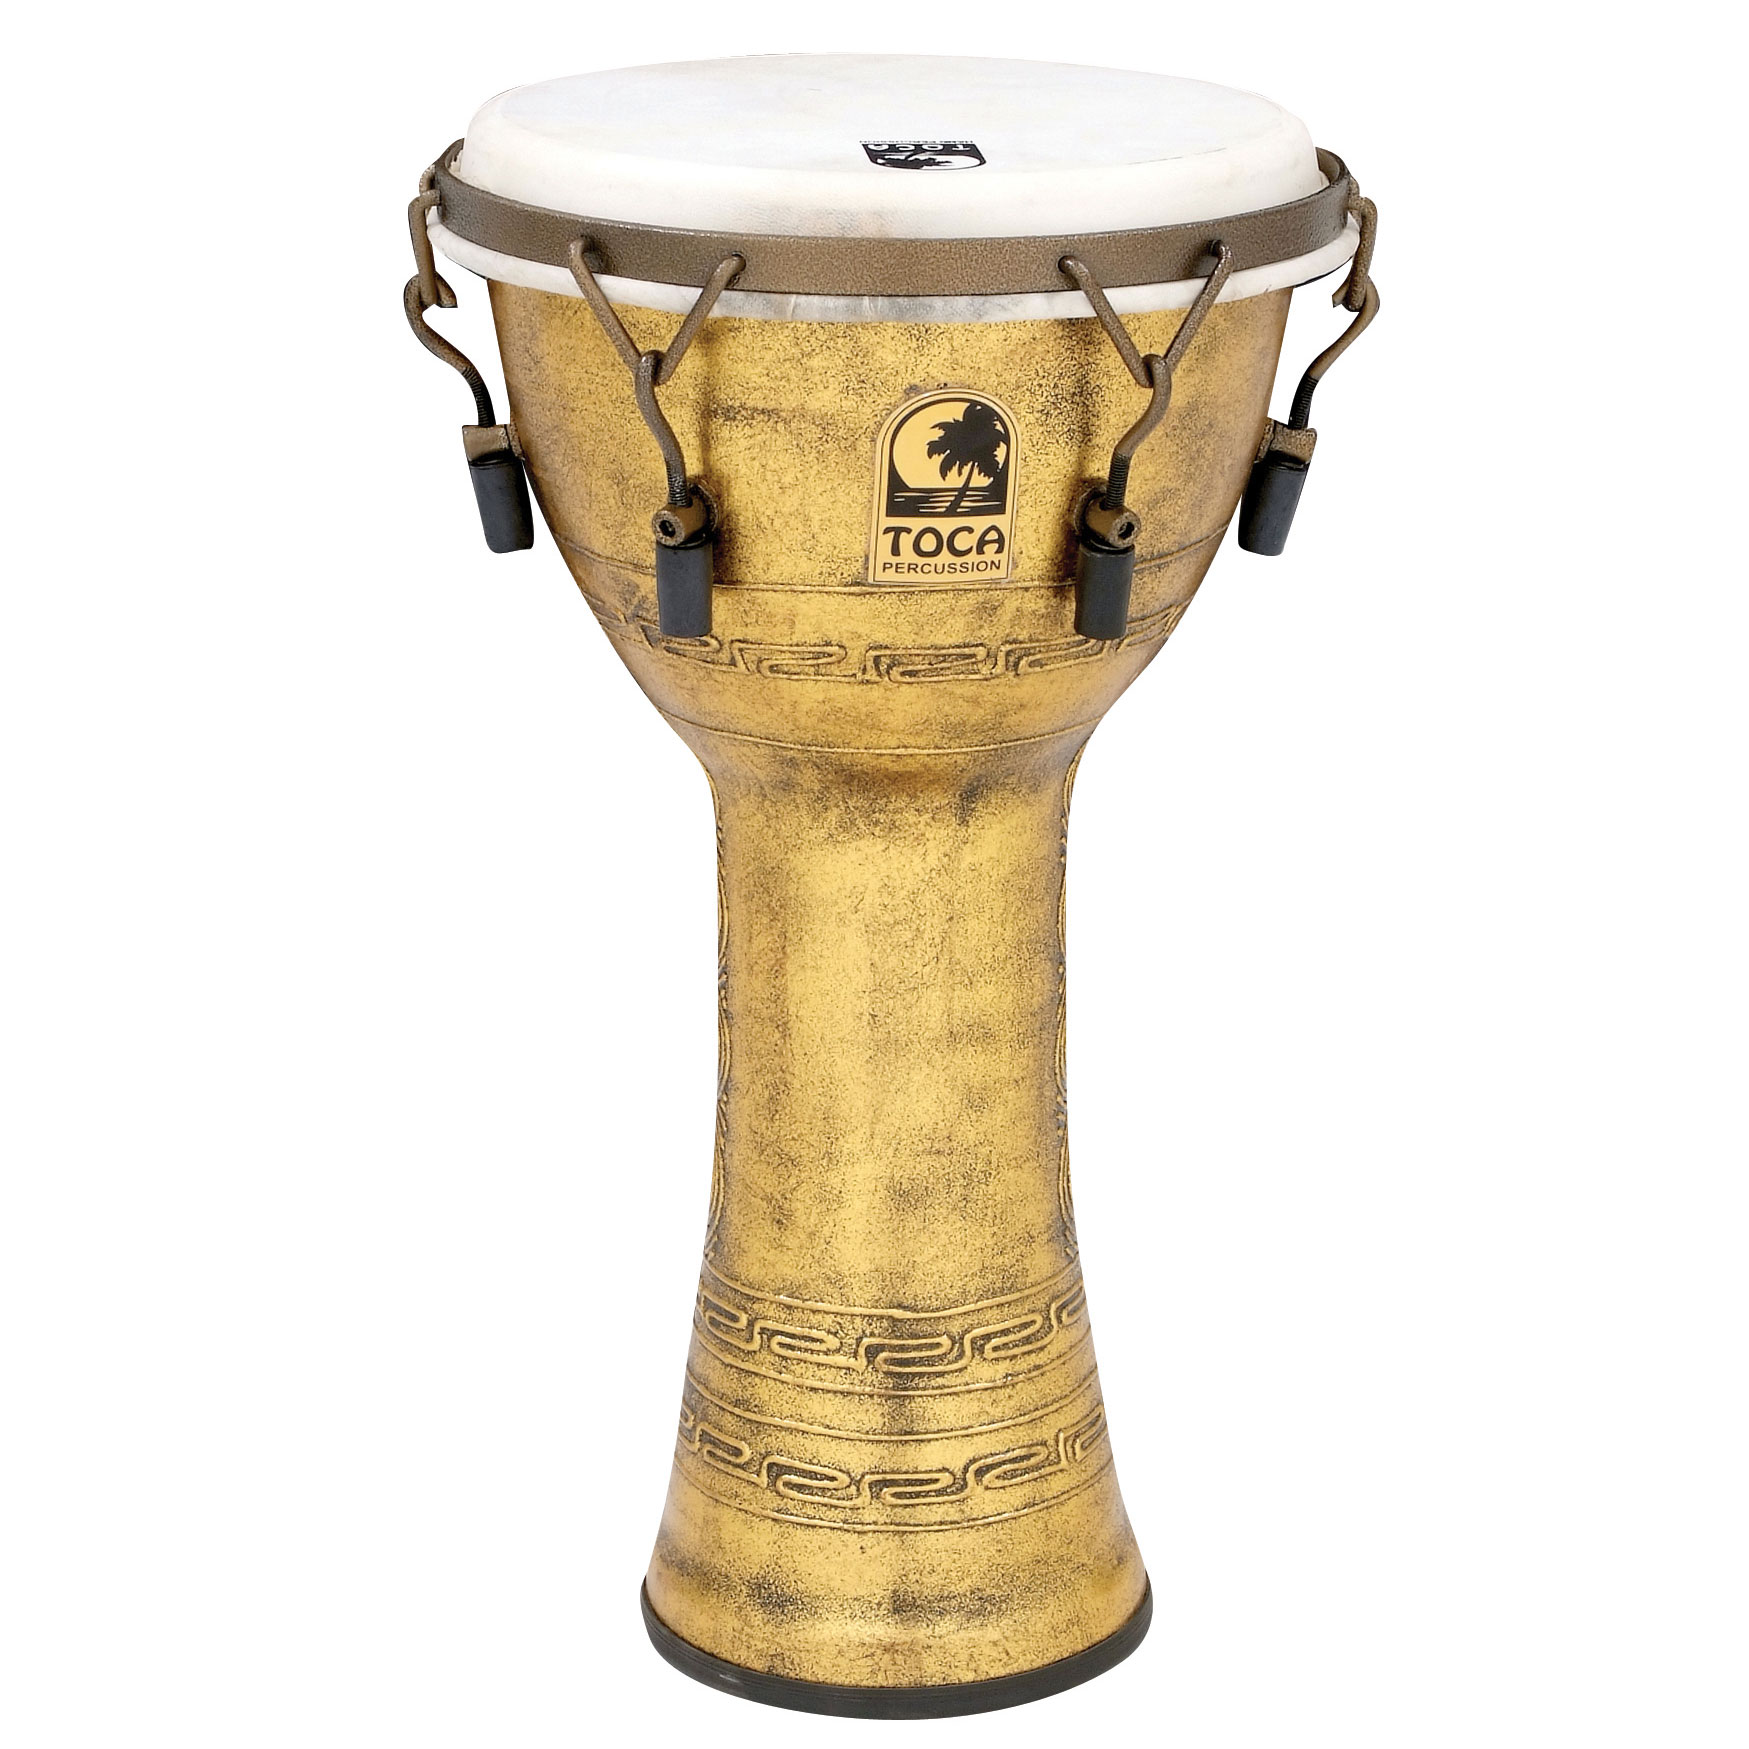 "Toca 10"" Freestyle Mechanically-Tuned Djembe with Extended Rim"